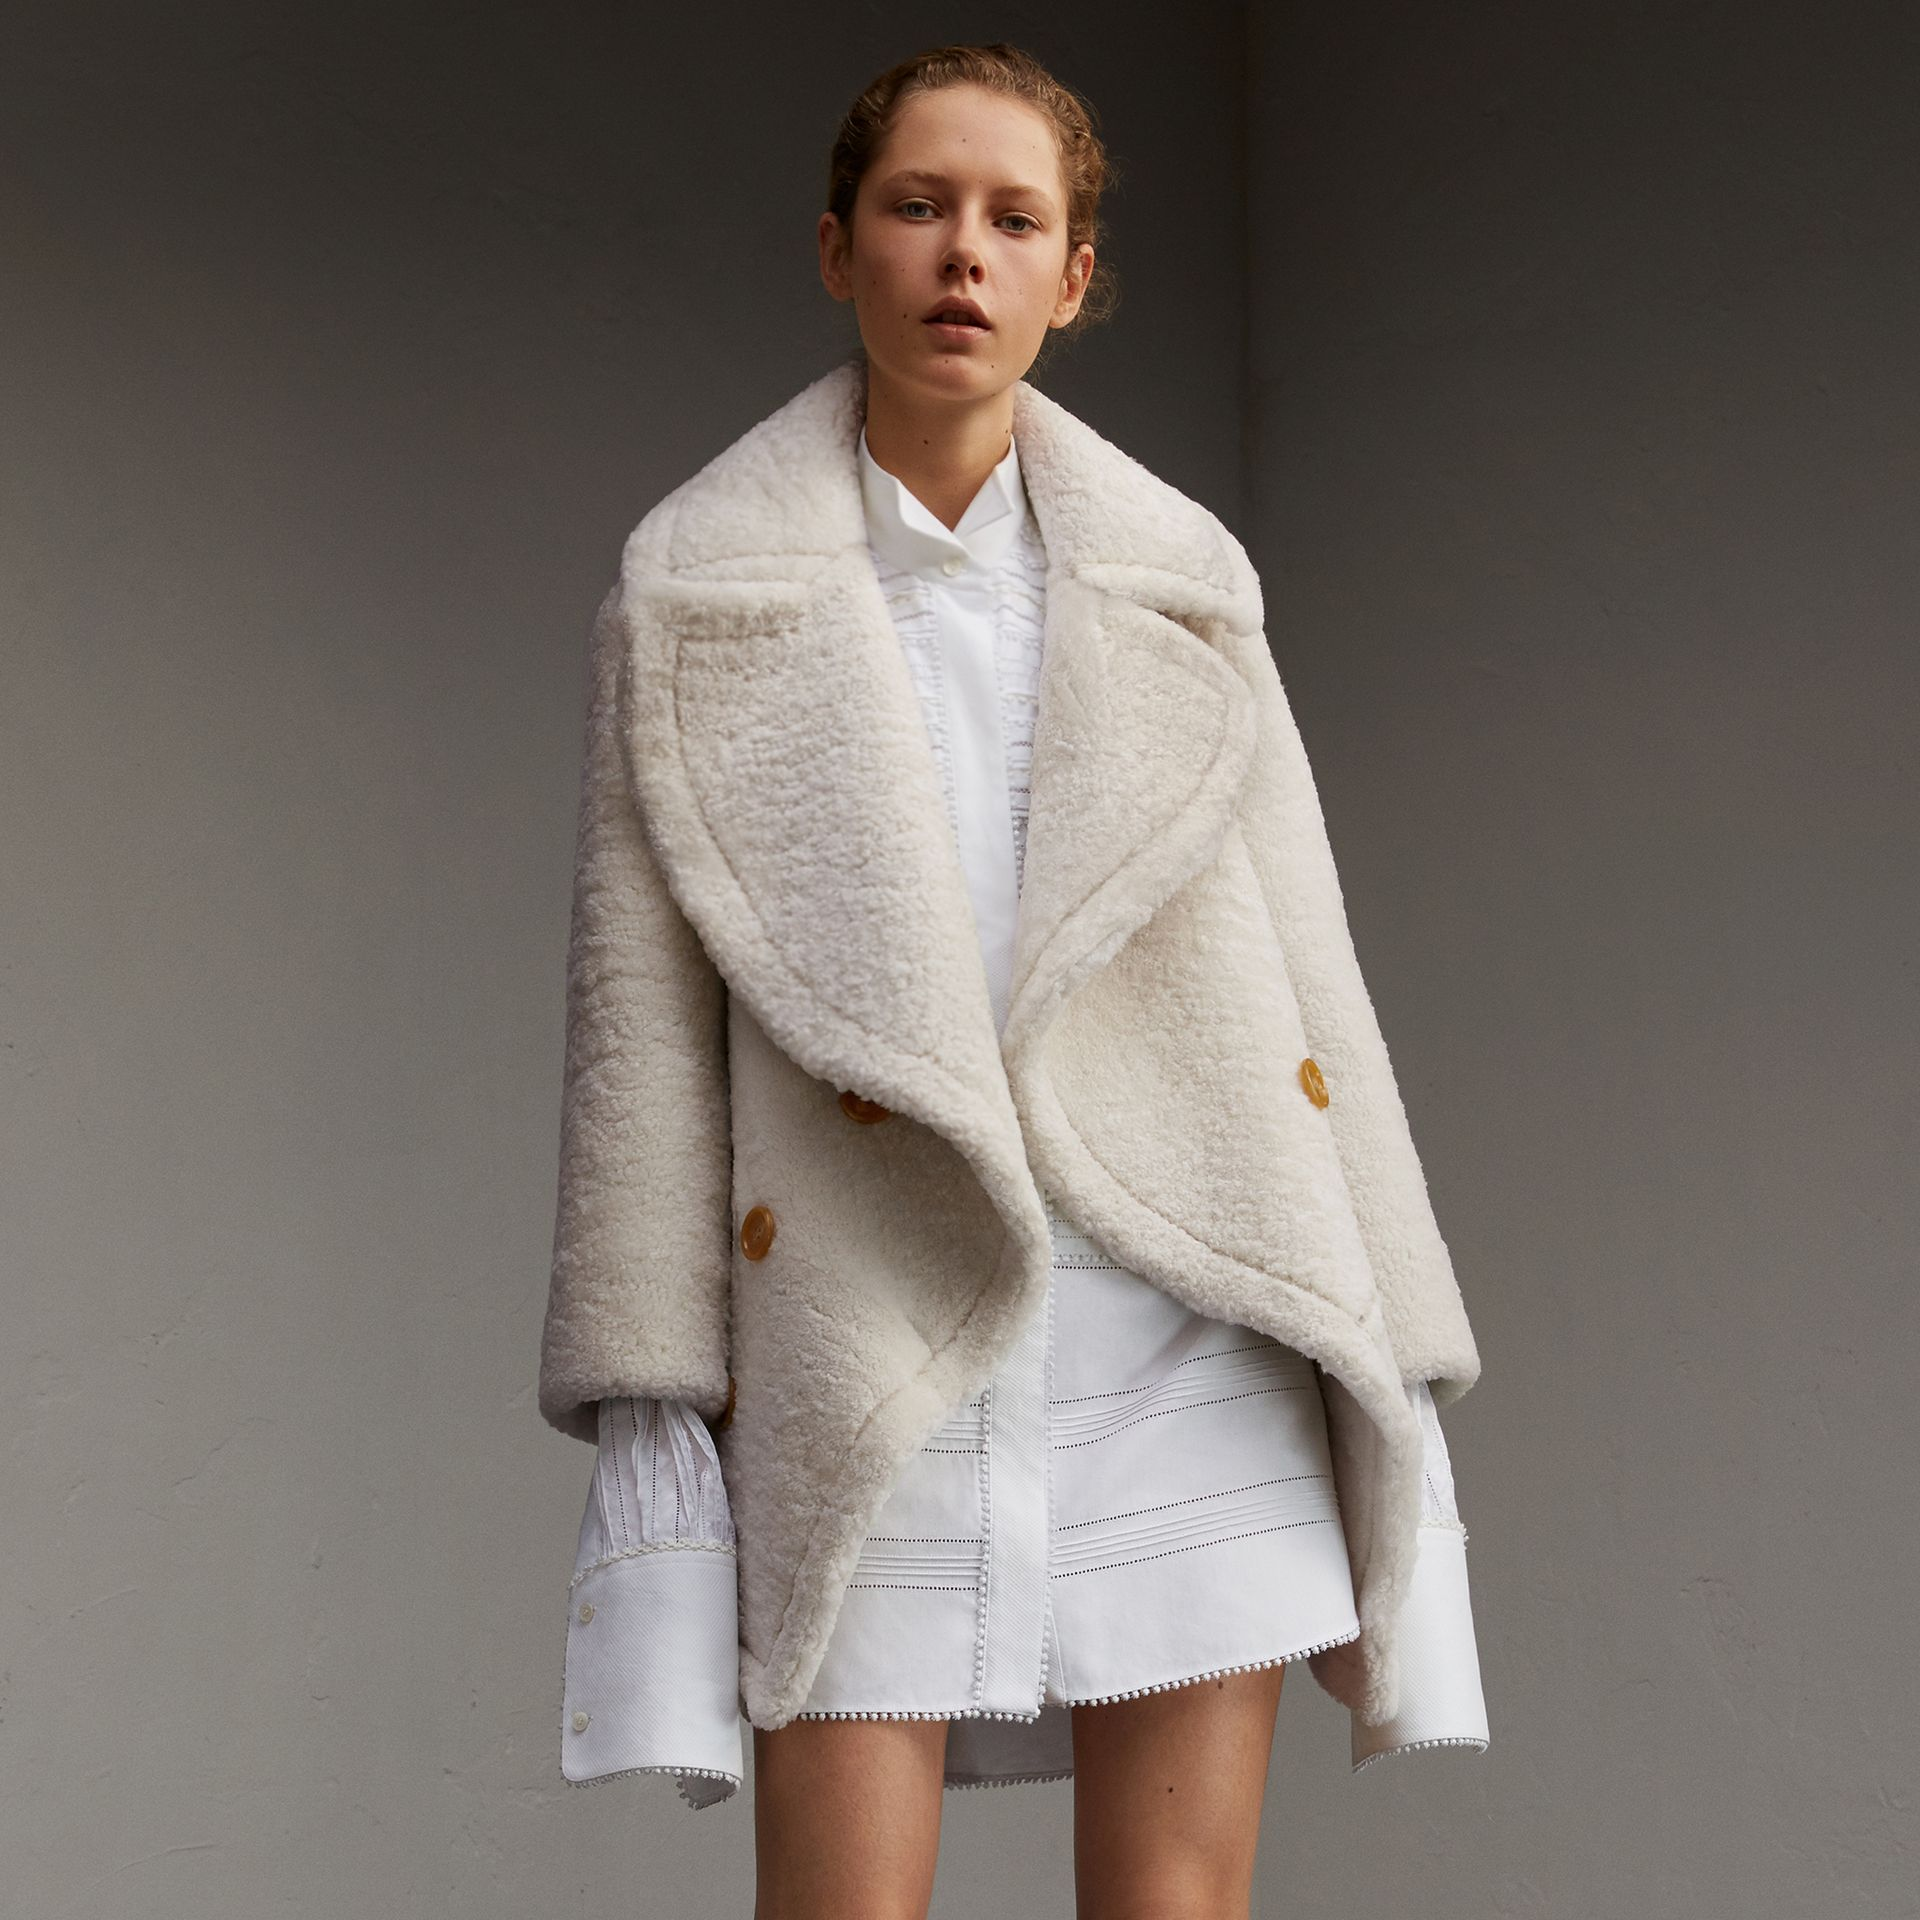 Oversize Collar Teddy Shearling Pea Coat in White - Women | Burberry - gallery image 1